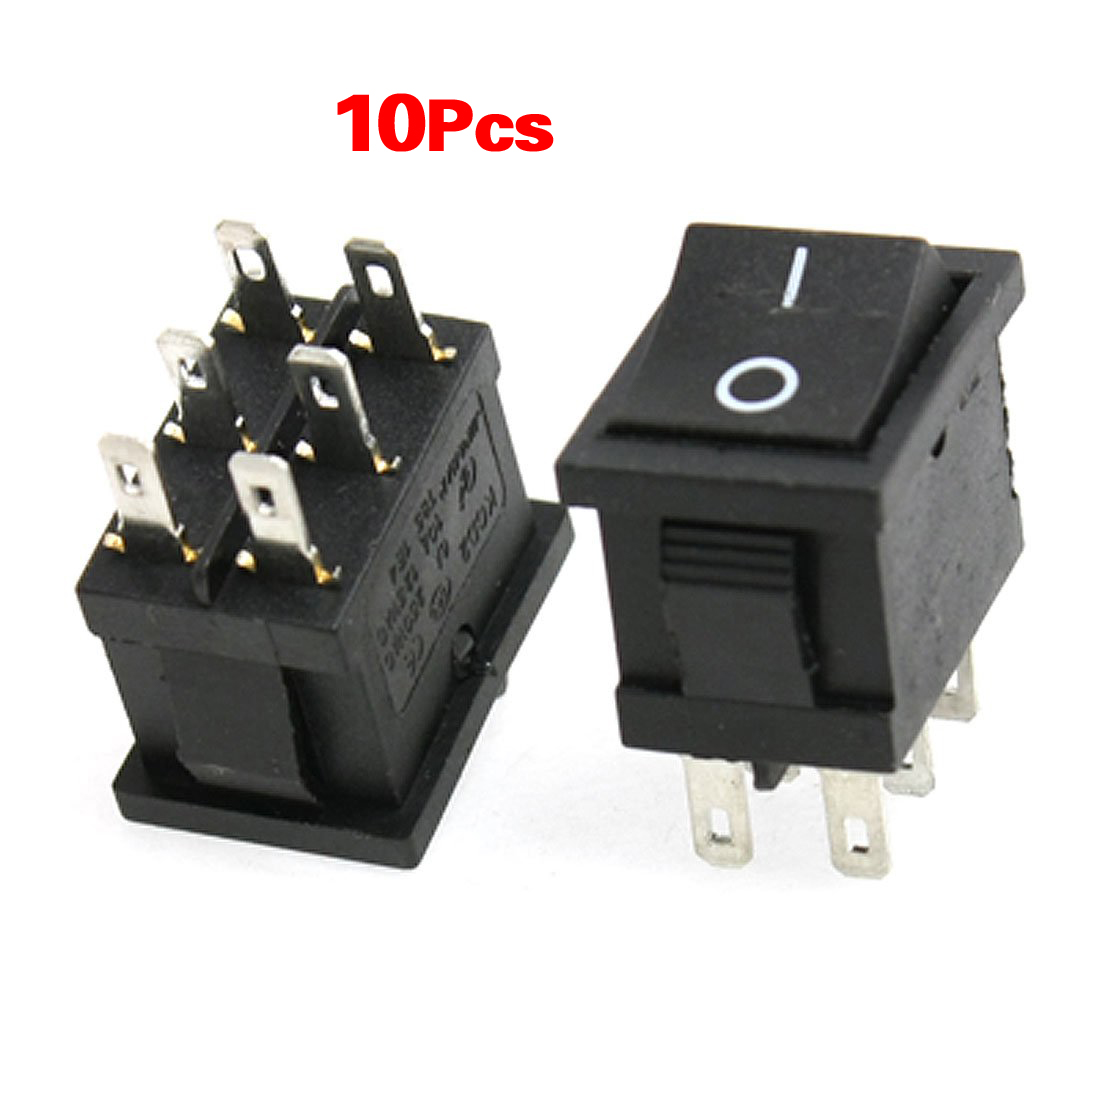 Promotion! 10pcs AC 6A/250V 10A/125V 6 Pin DPDT ON/ON 2 Position Snap In Boat Rocker Switch promotion 5 pcs x red light illuminated double spst on off snap in boat rocker switch 6 pin